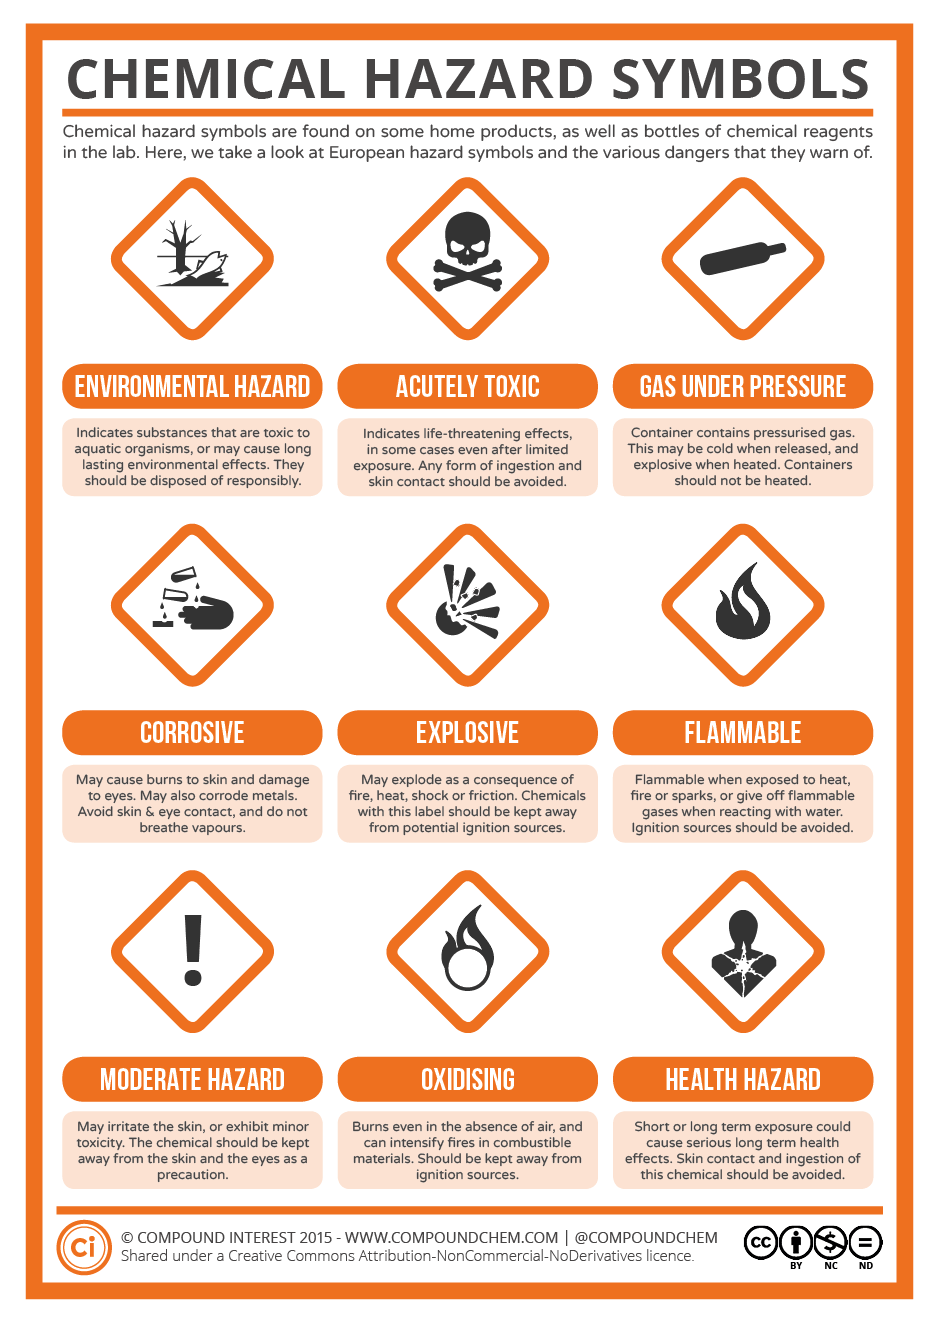 Compound Interest - A Guide to Chemical Hazard Symbols